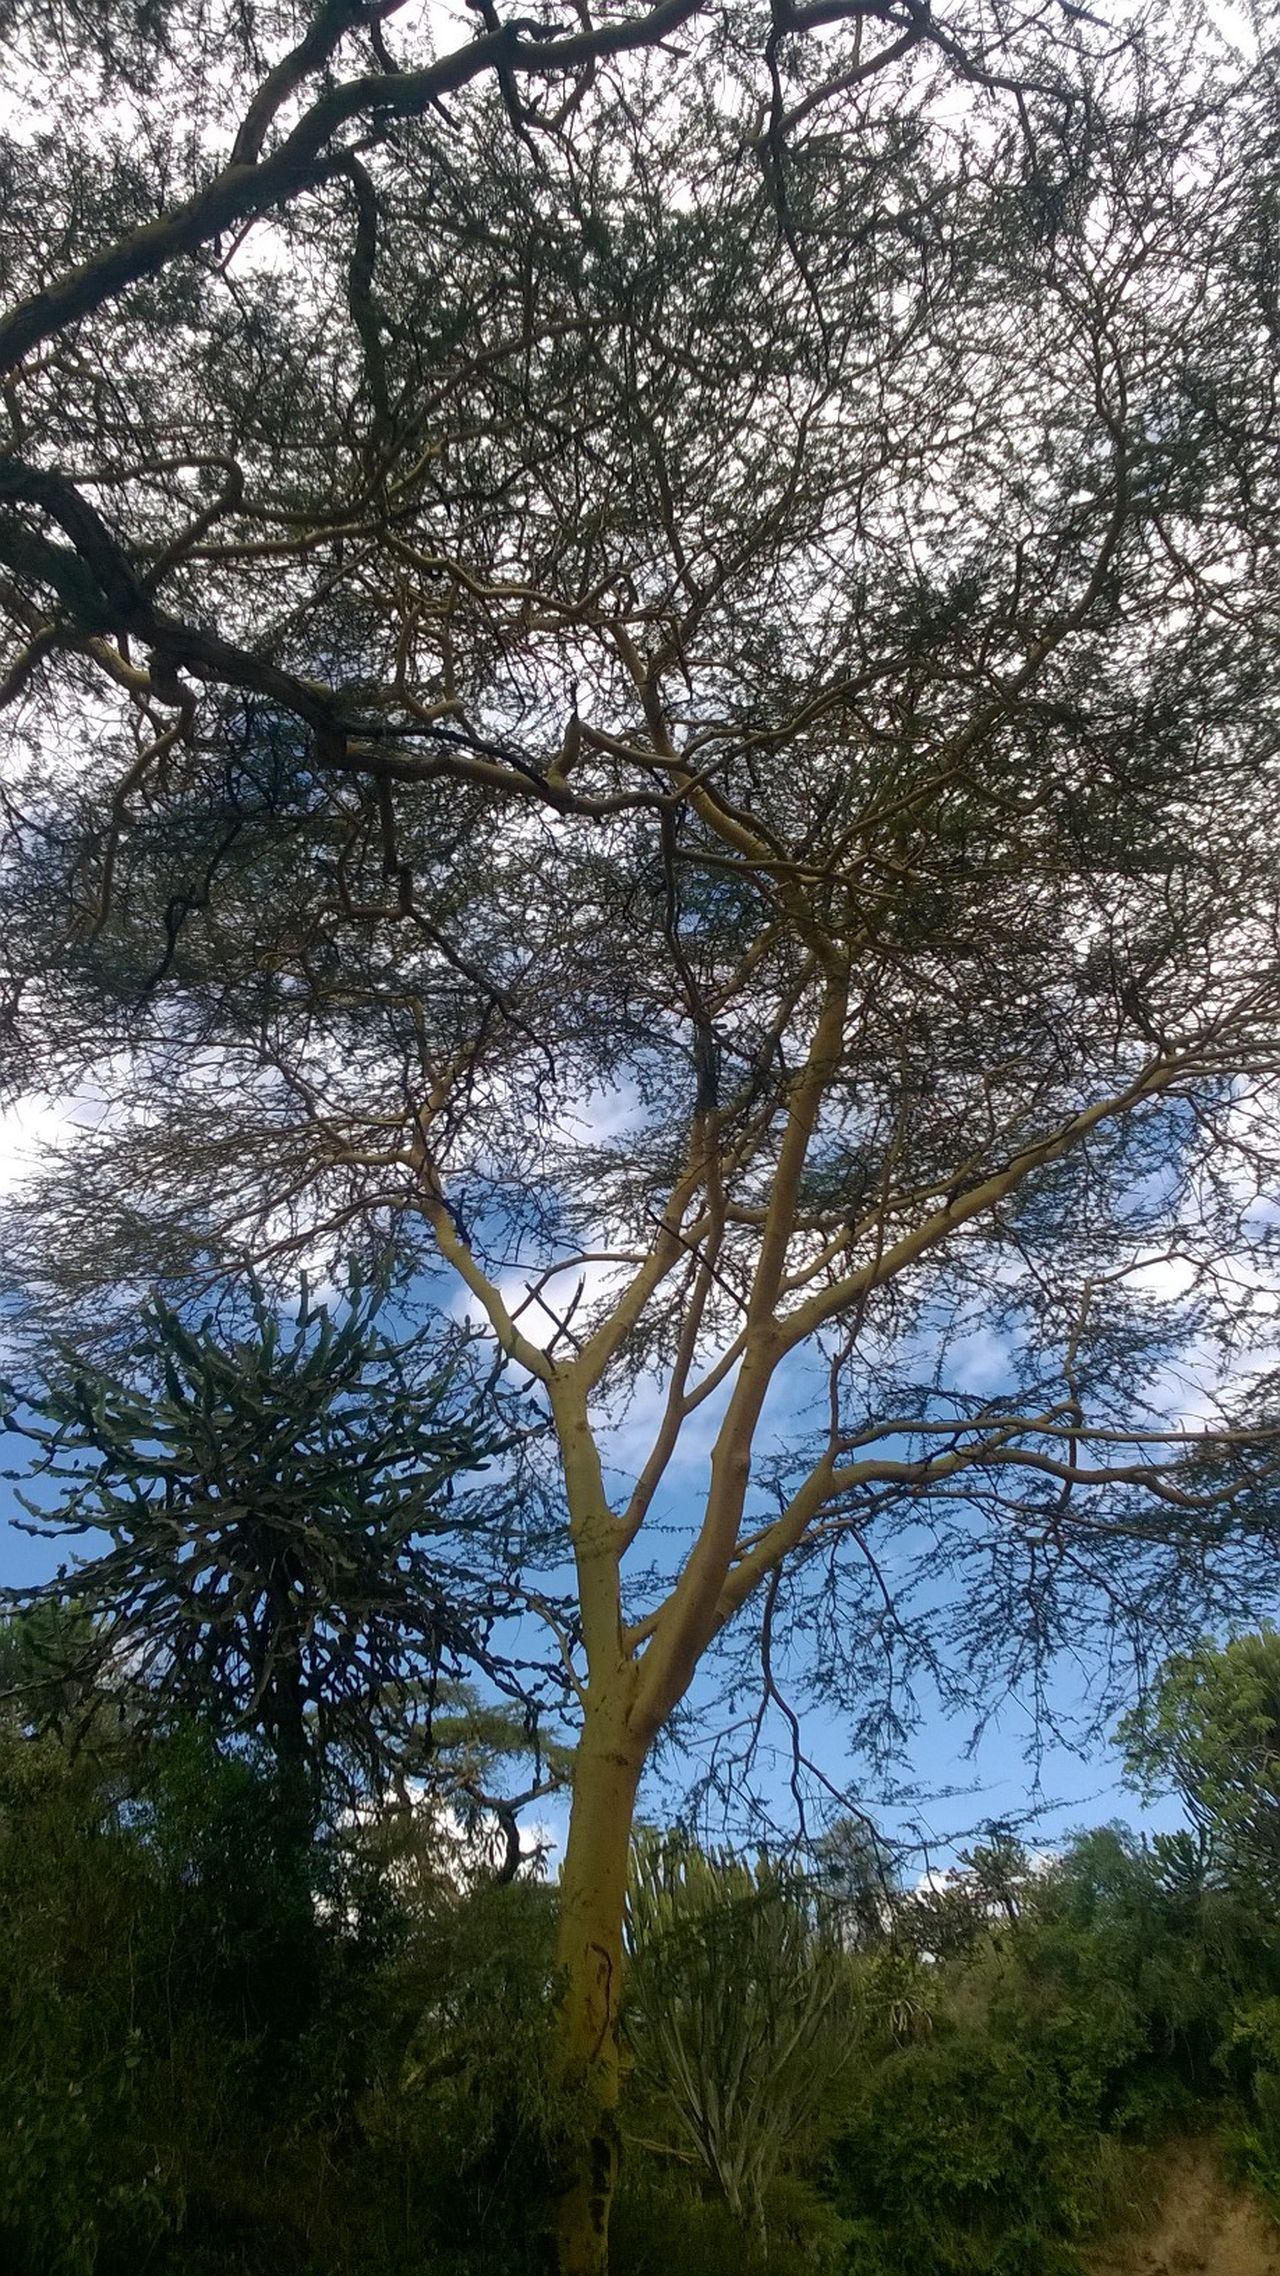 Acacia Tree Beauty In Nature Branch Close-up Day Growth Intertwined Branches Low Angle View Nature No People Outdoors Sky Tranquility Tree